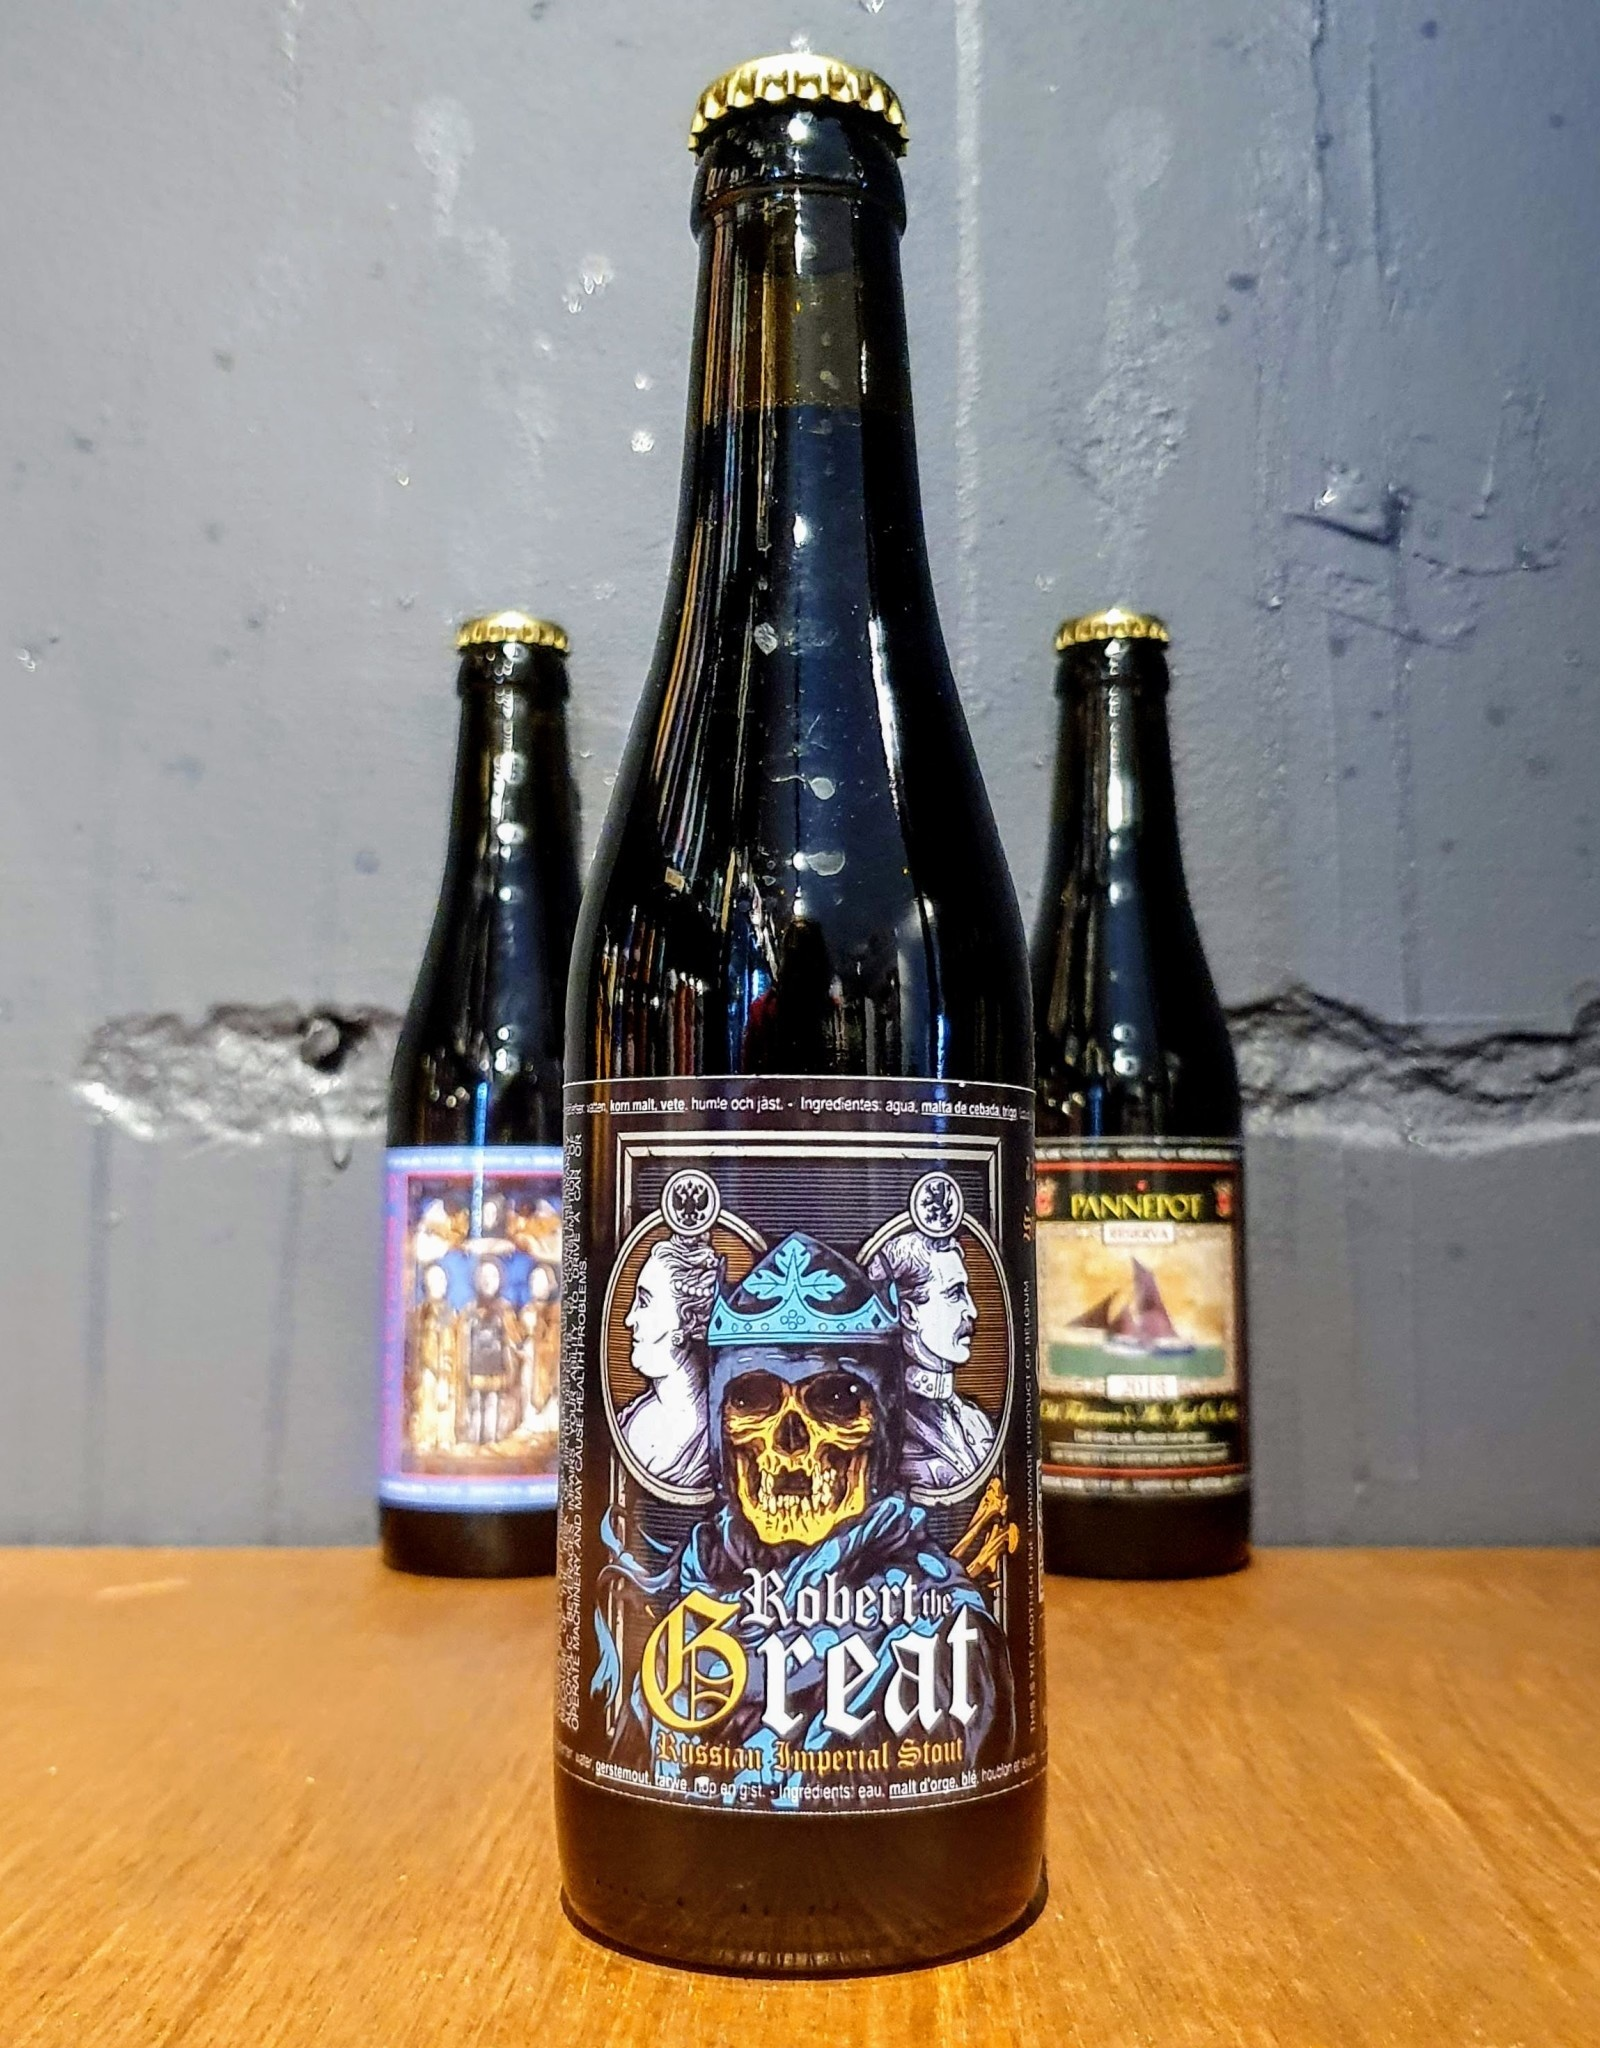 struisse Struise:  Robert the Great